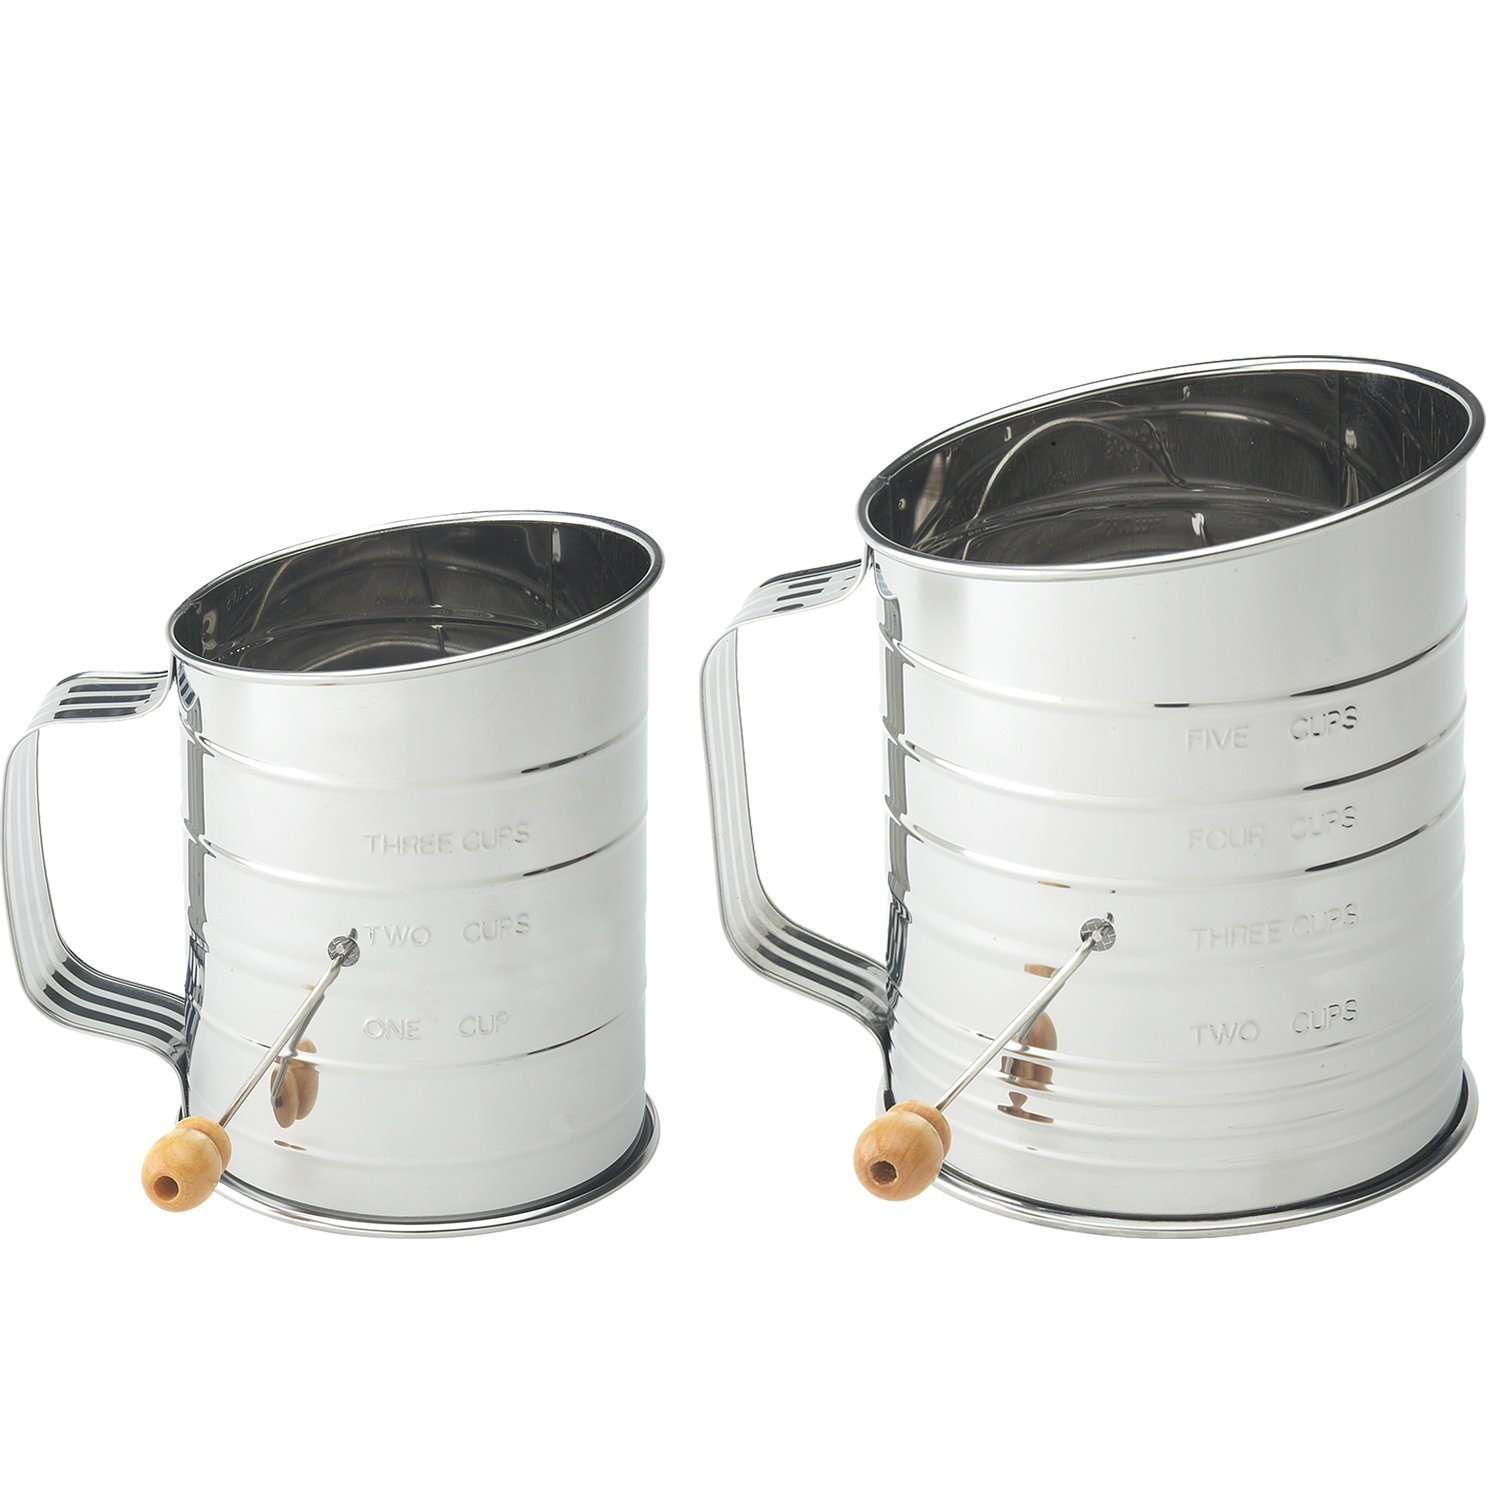 Stainless Steel Flour Sifter Hand Crank Sifters for Baking, (Set of 2) 3-Cup and 5-Cup with Amazing Mesh Screen By Mrs. Anderson's